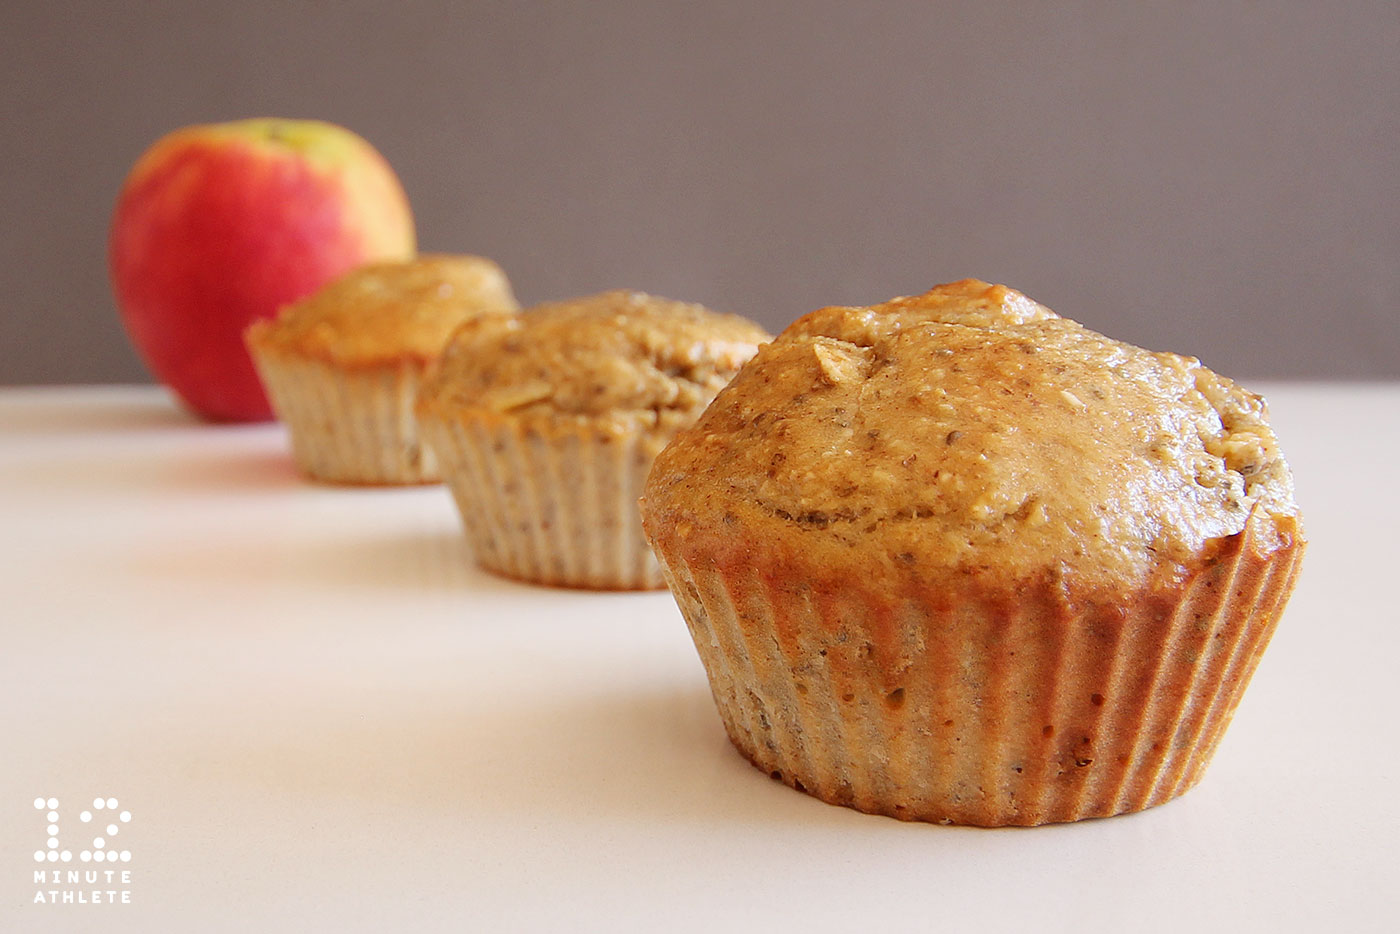 Apple Banana Chia Protein Muffin Recipe